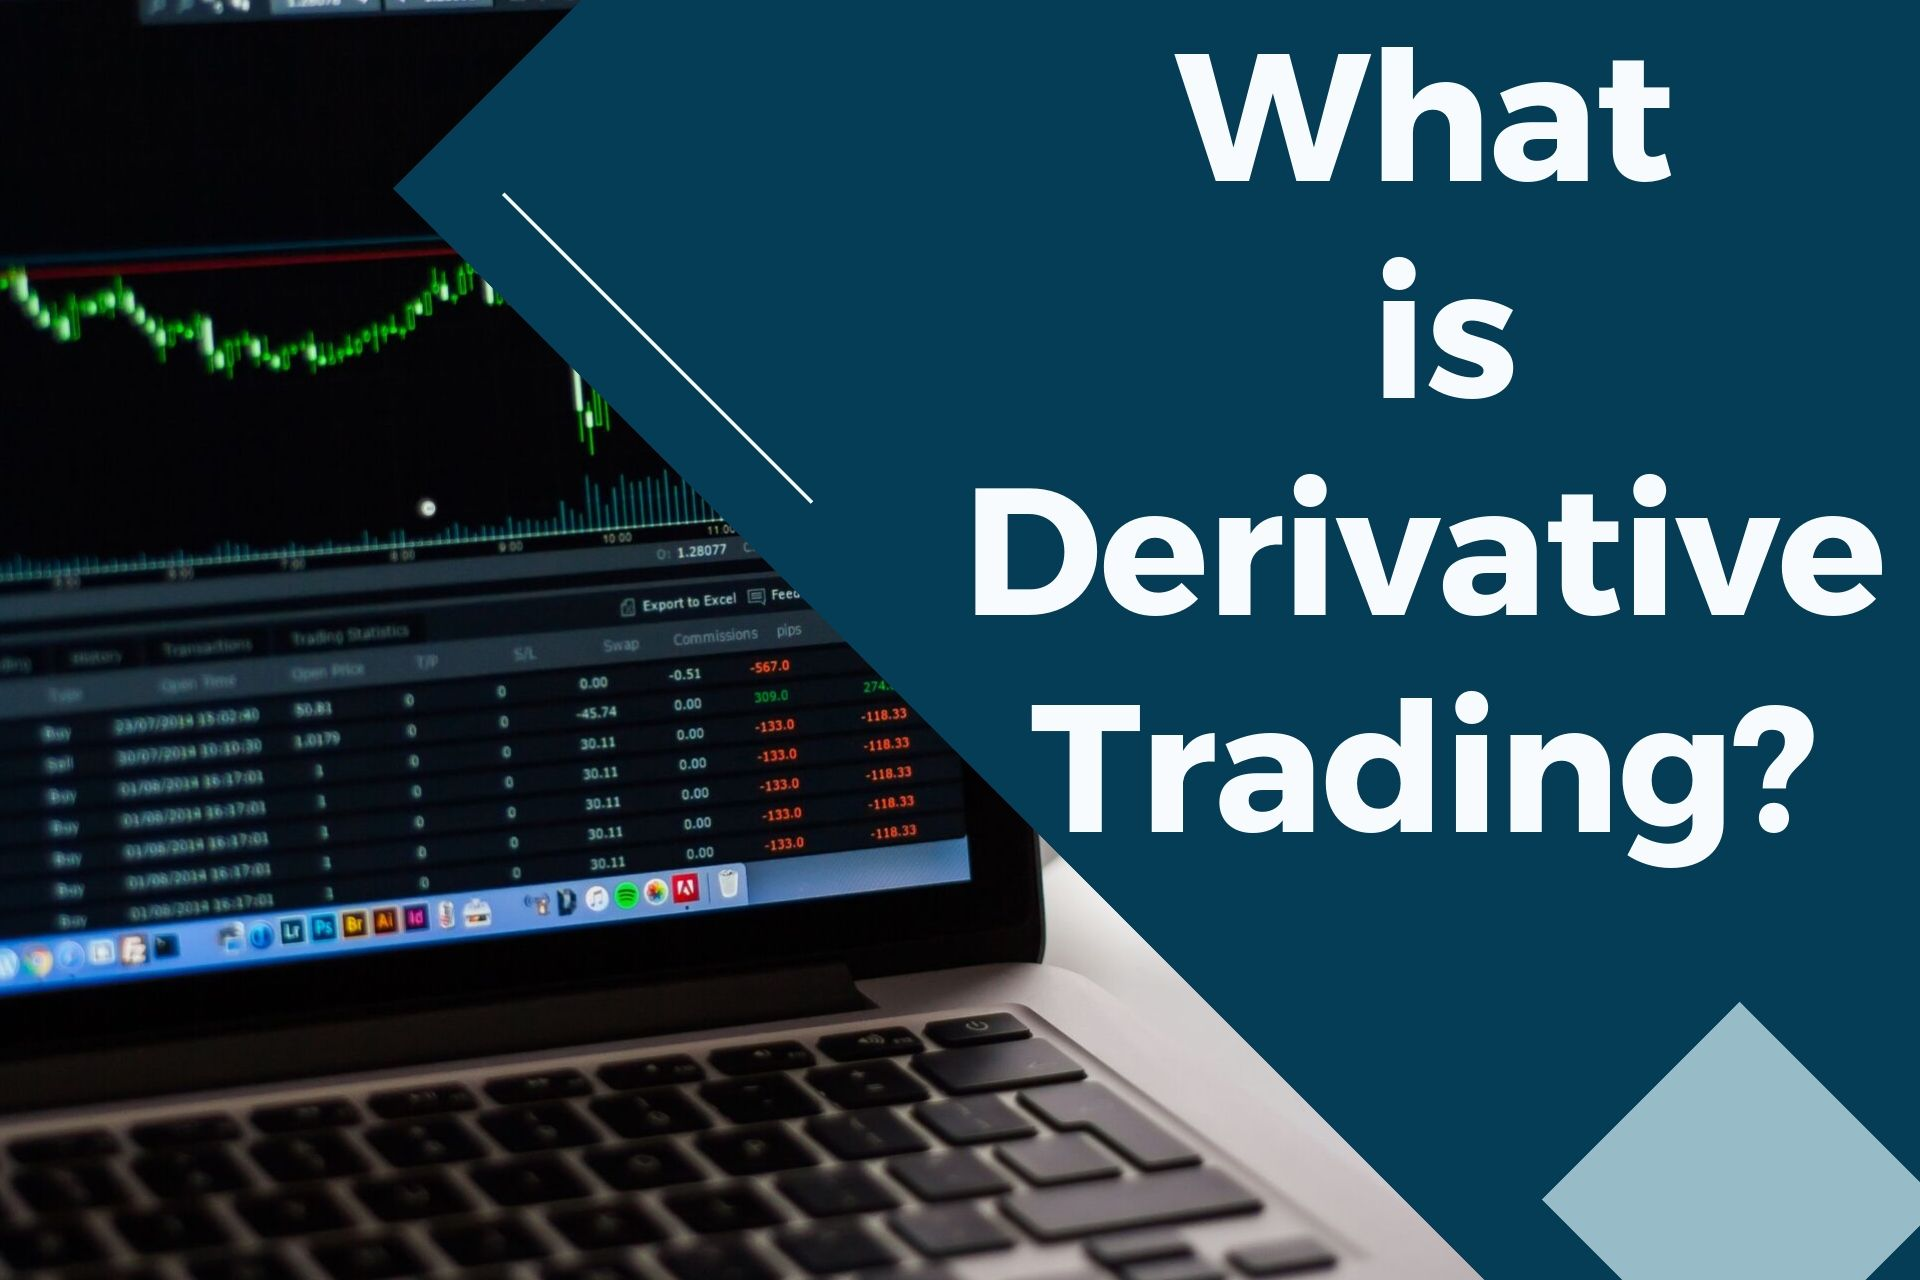 What is derivative trading